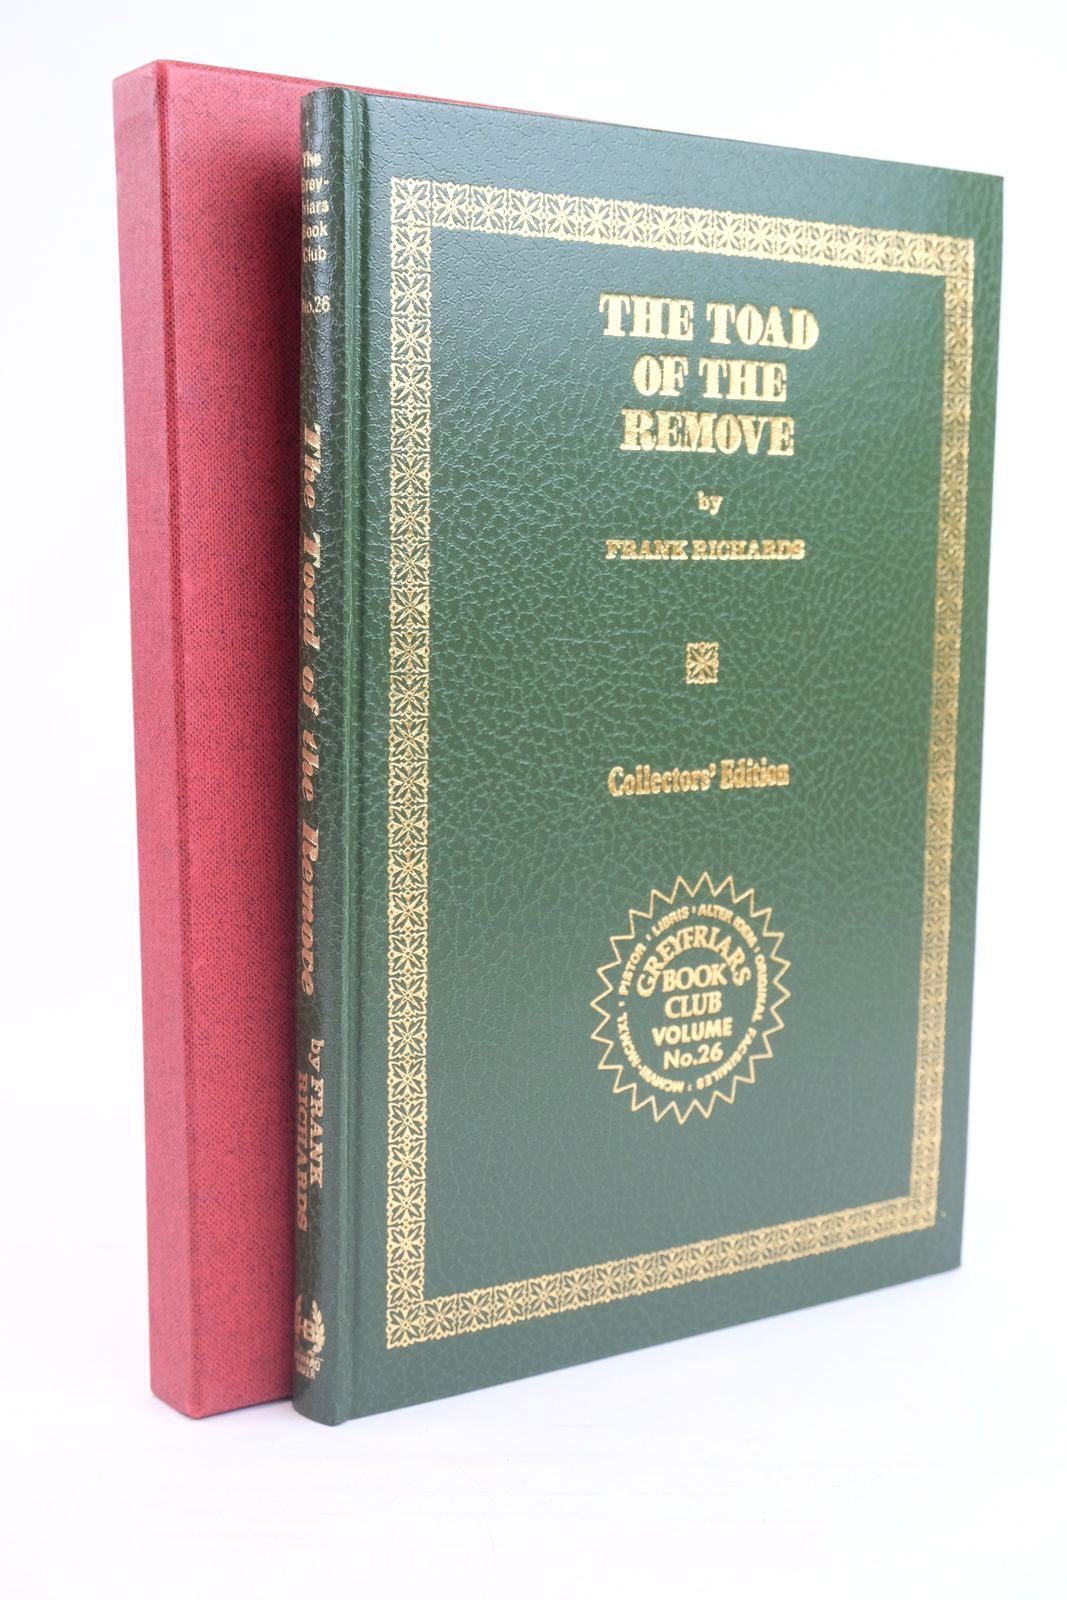 Photo of THE TOAD OF THE REMOVE written by Richards, Frank published by Howard Baker Press (STOCK CODE: 1319964)  for sale by Stella & Rose's Books